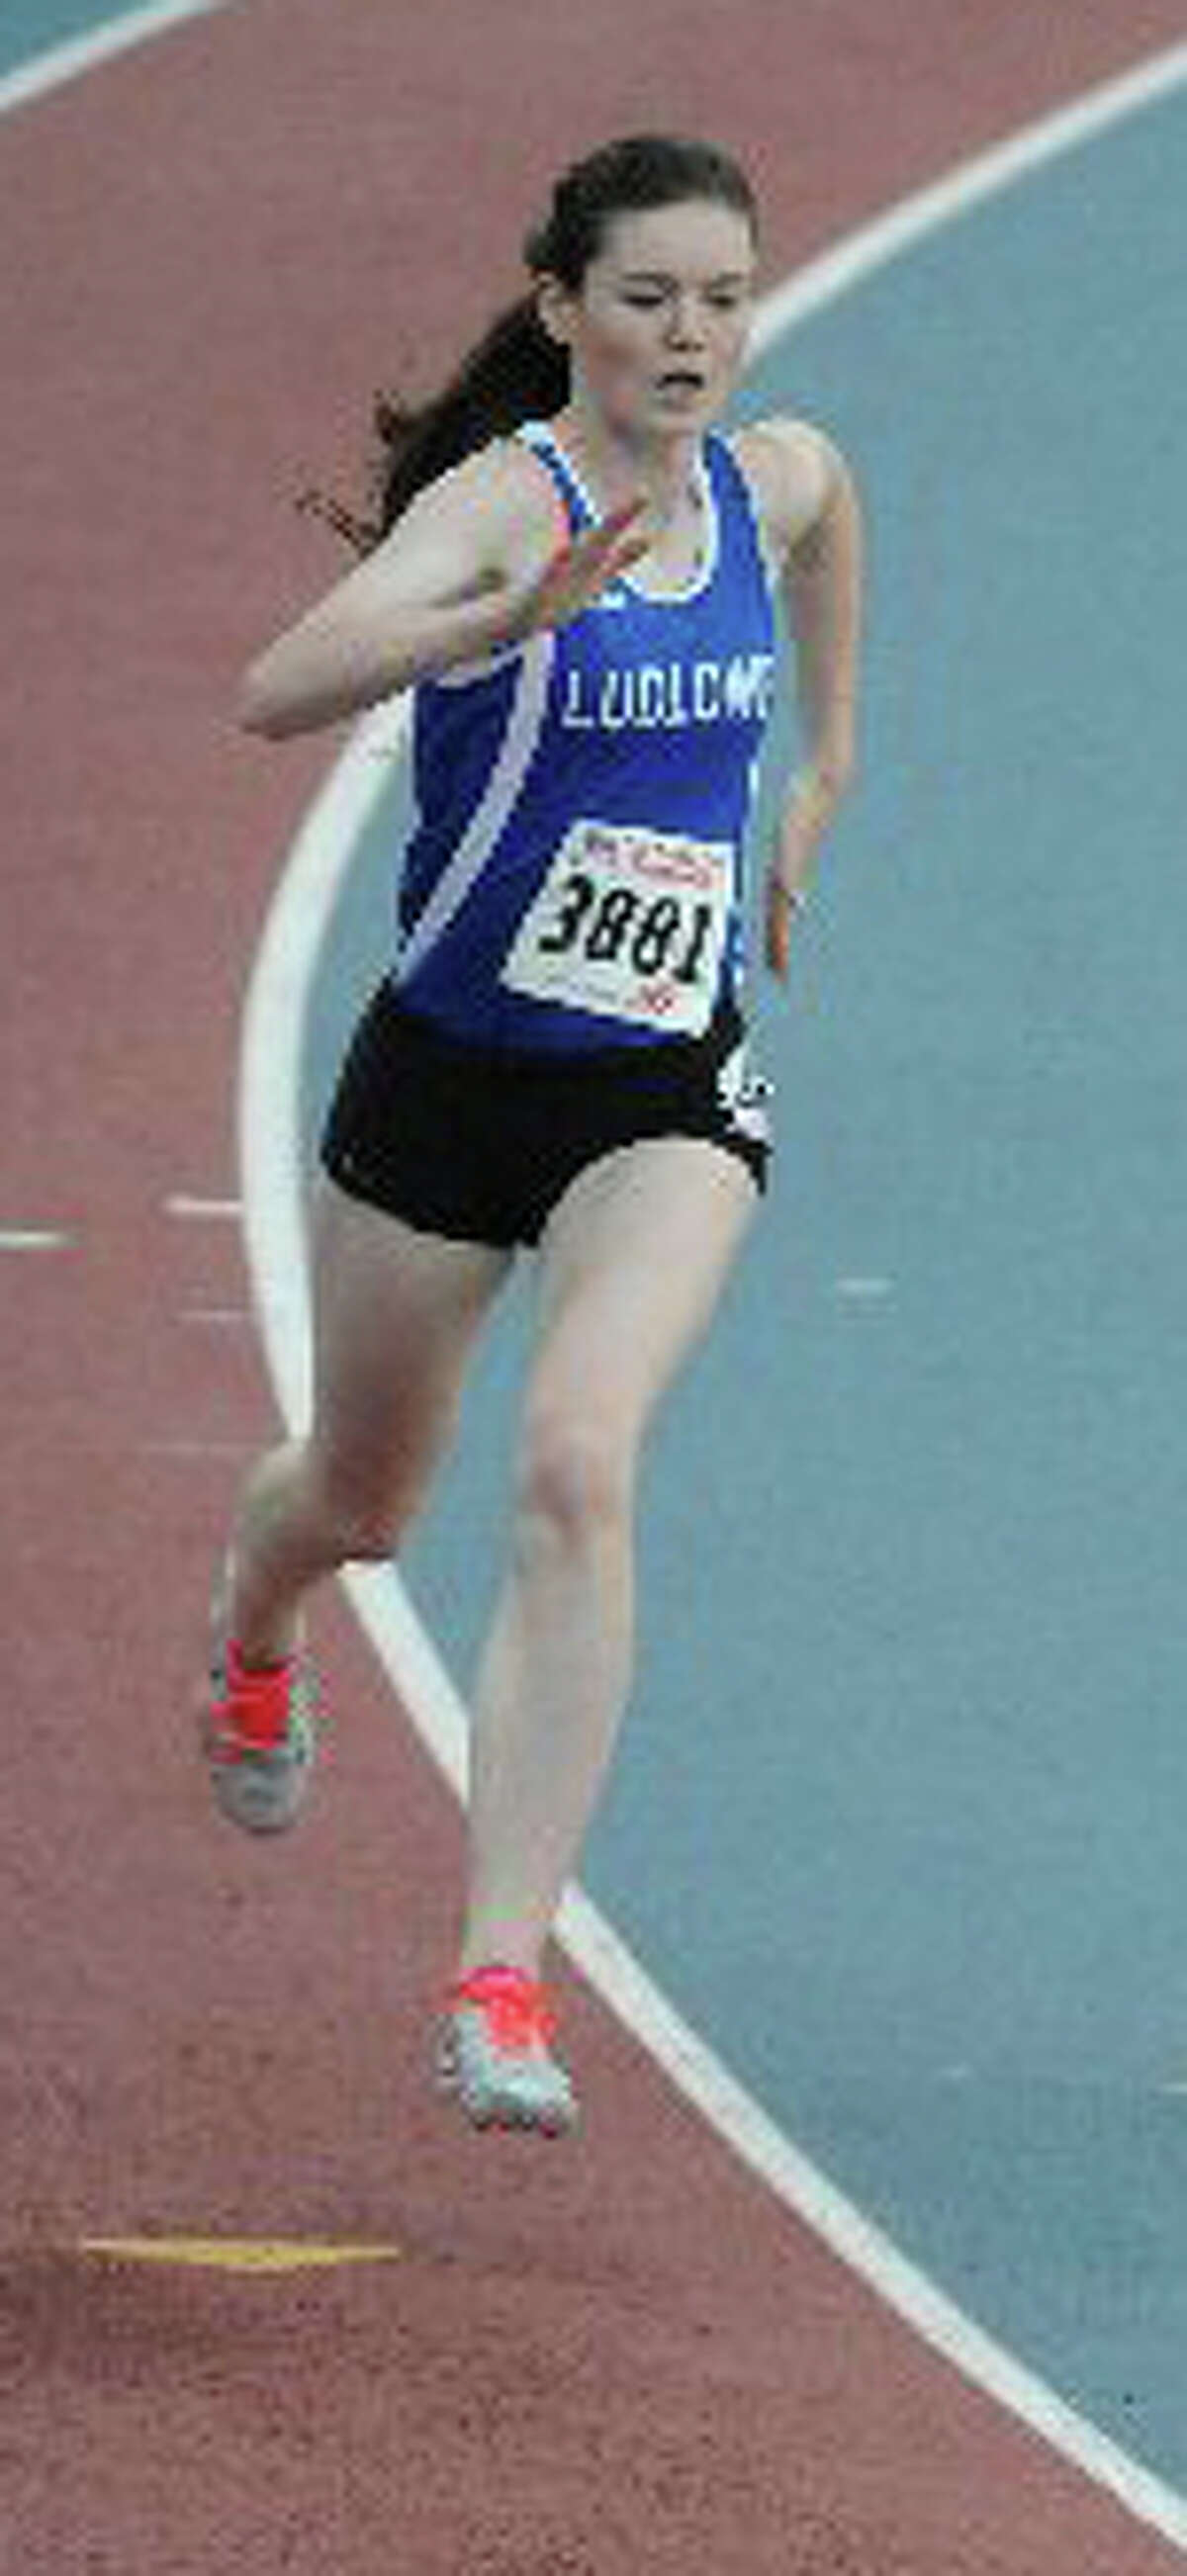 Ludlowe runner Emma Koether, coming off a solid indoor track season, will help anchor the Falcons' outdoor squad this spring. Koether is expected to run the 100, 200 and 400 meter races.